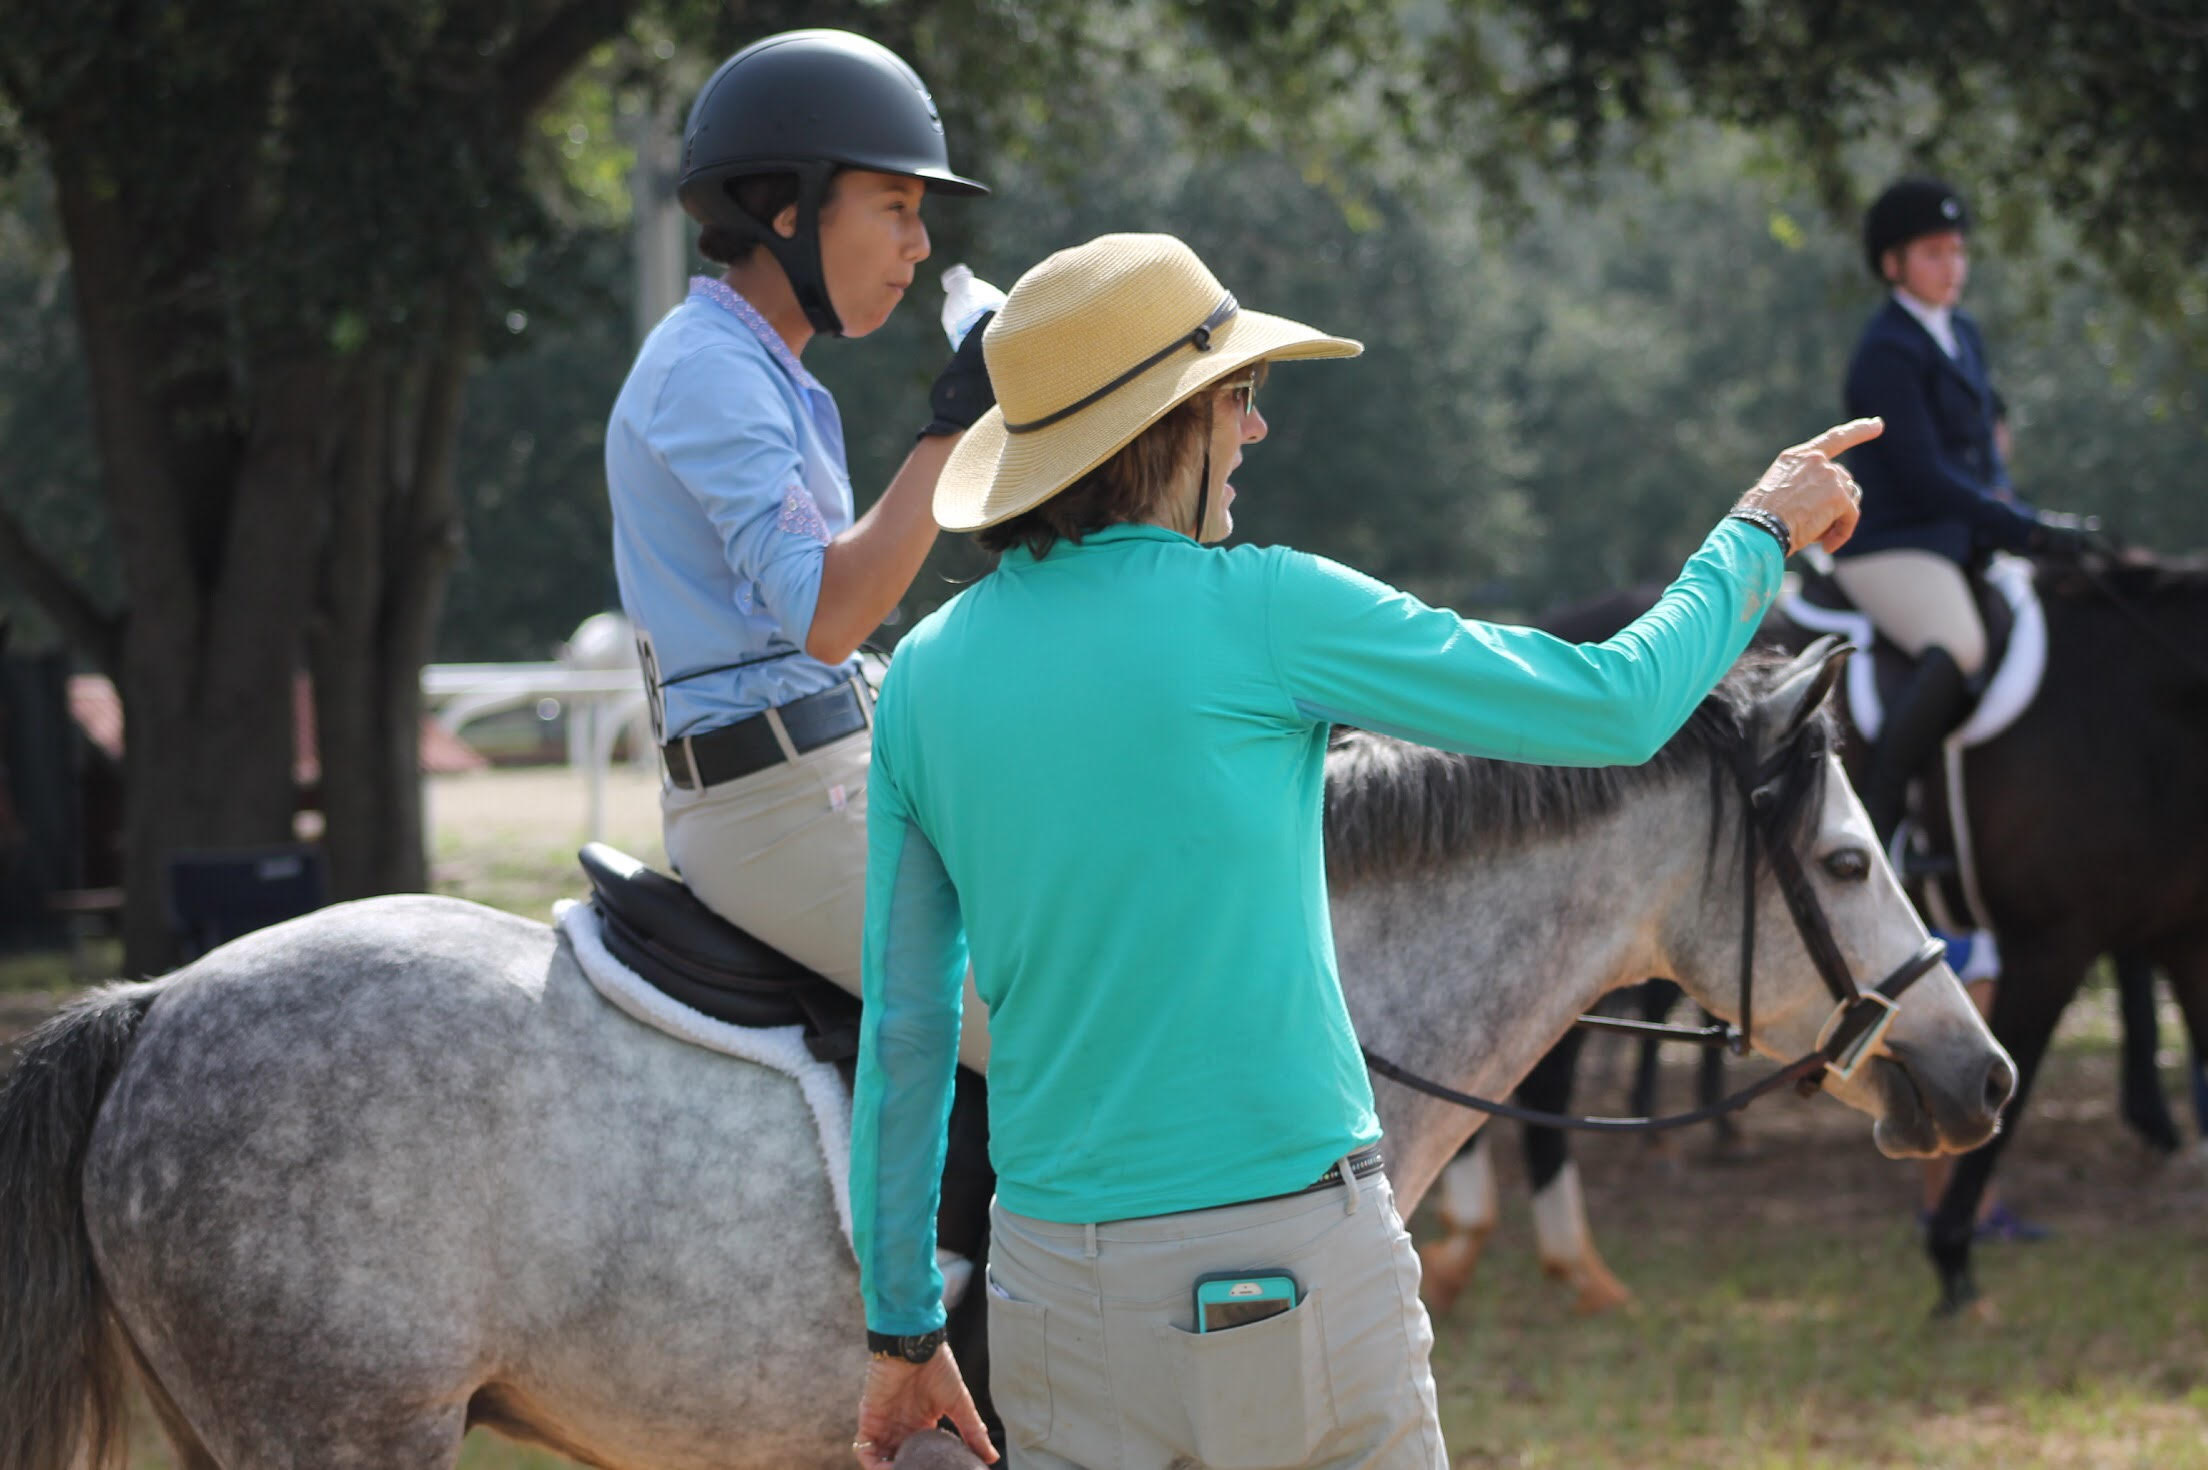 Peggy Stevens - If you are interested in purchasing or leasing a horse, please contact us.